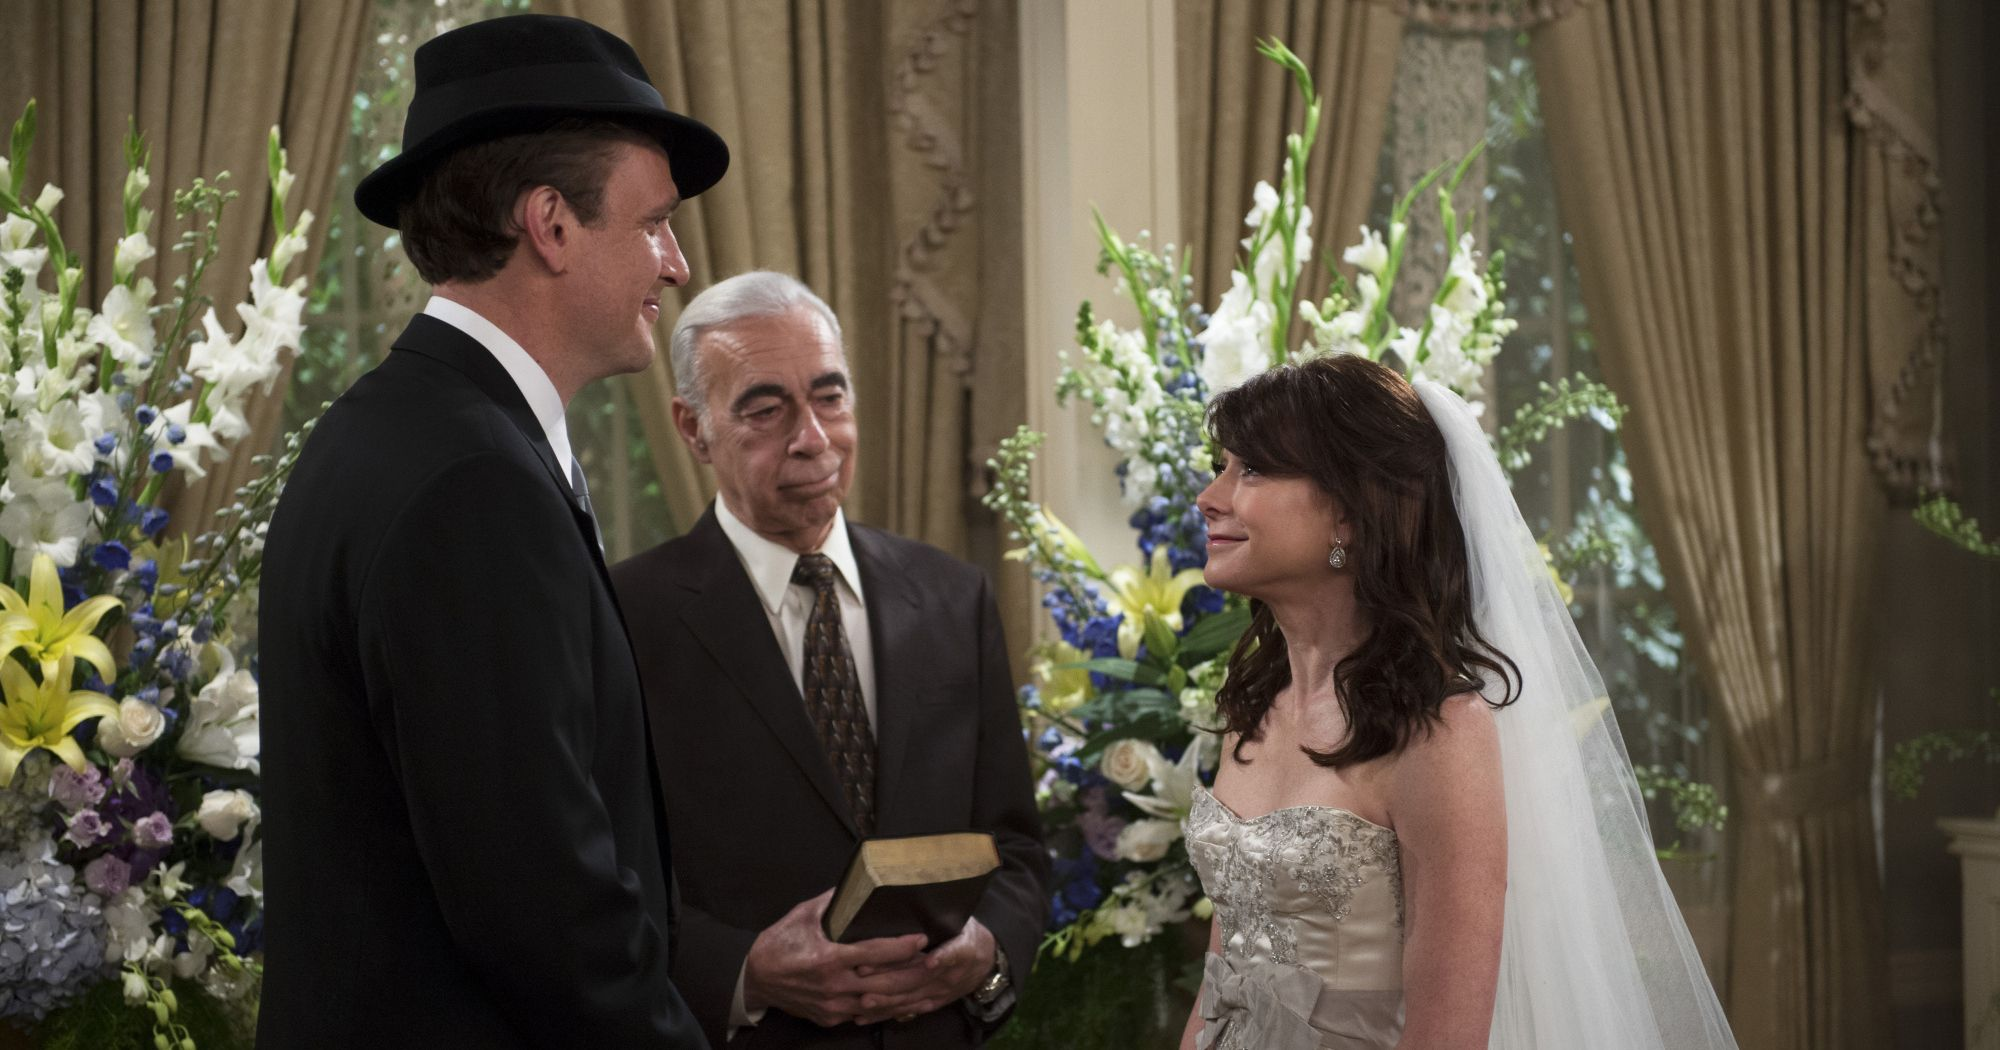 Marshall & Lily (How I Met Your Mother) - cung hoàng đạo